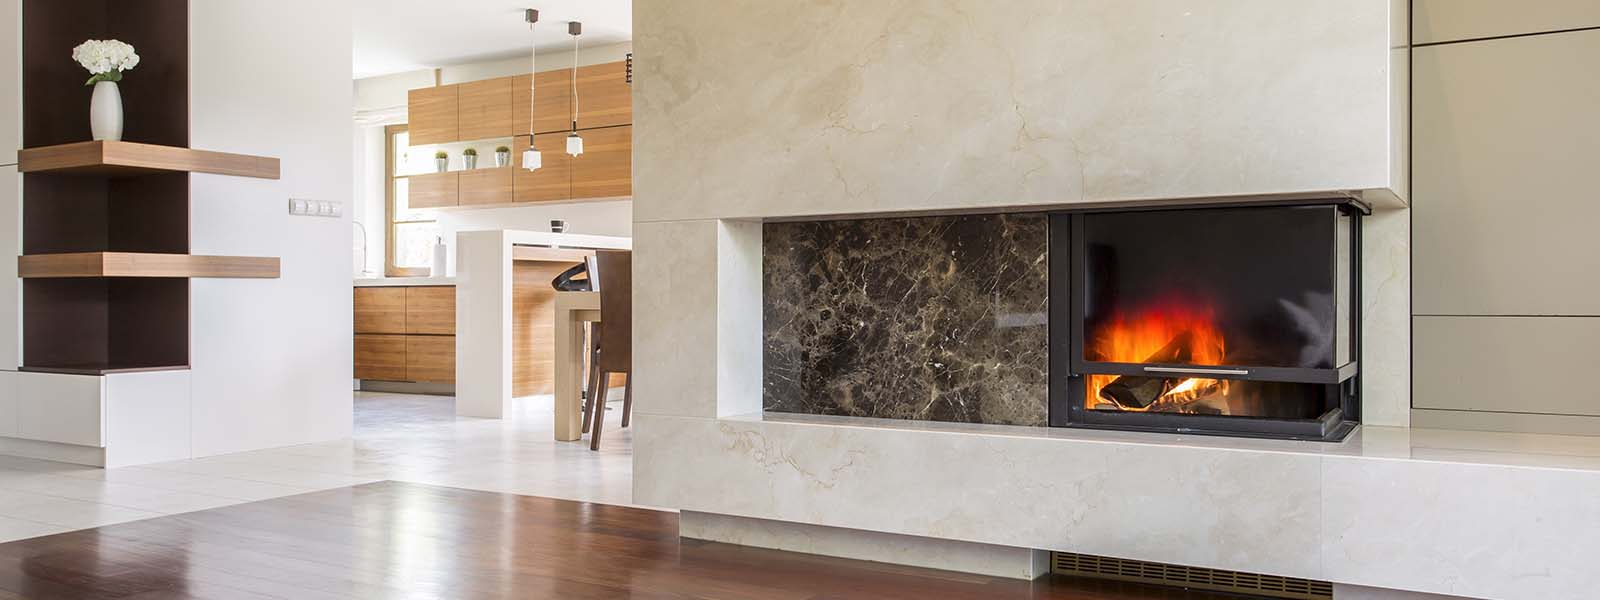 How Much Do Gas Fireplace Logs Cost Gas Fireplaces Marshall S Inc Service Repair Installation